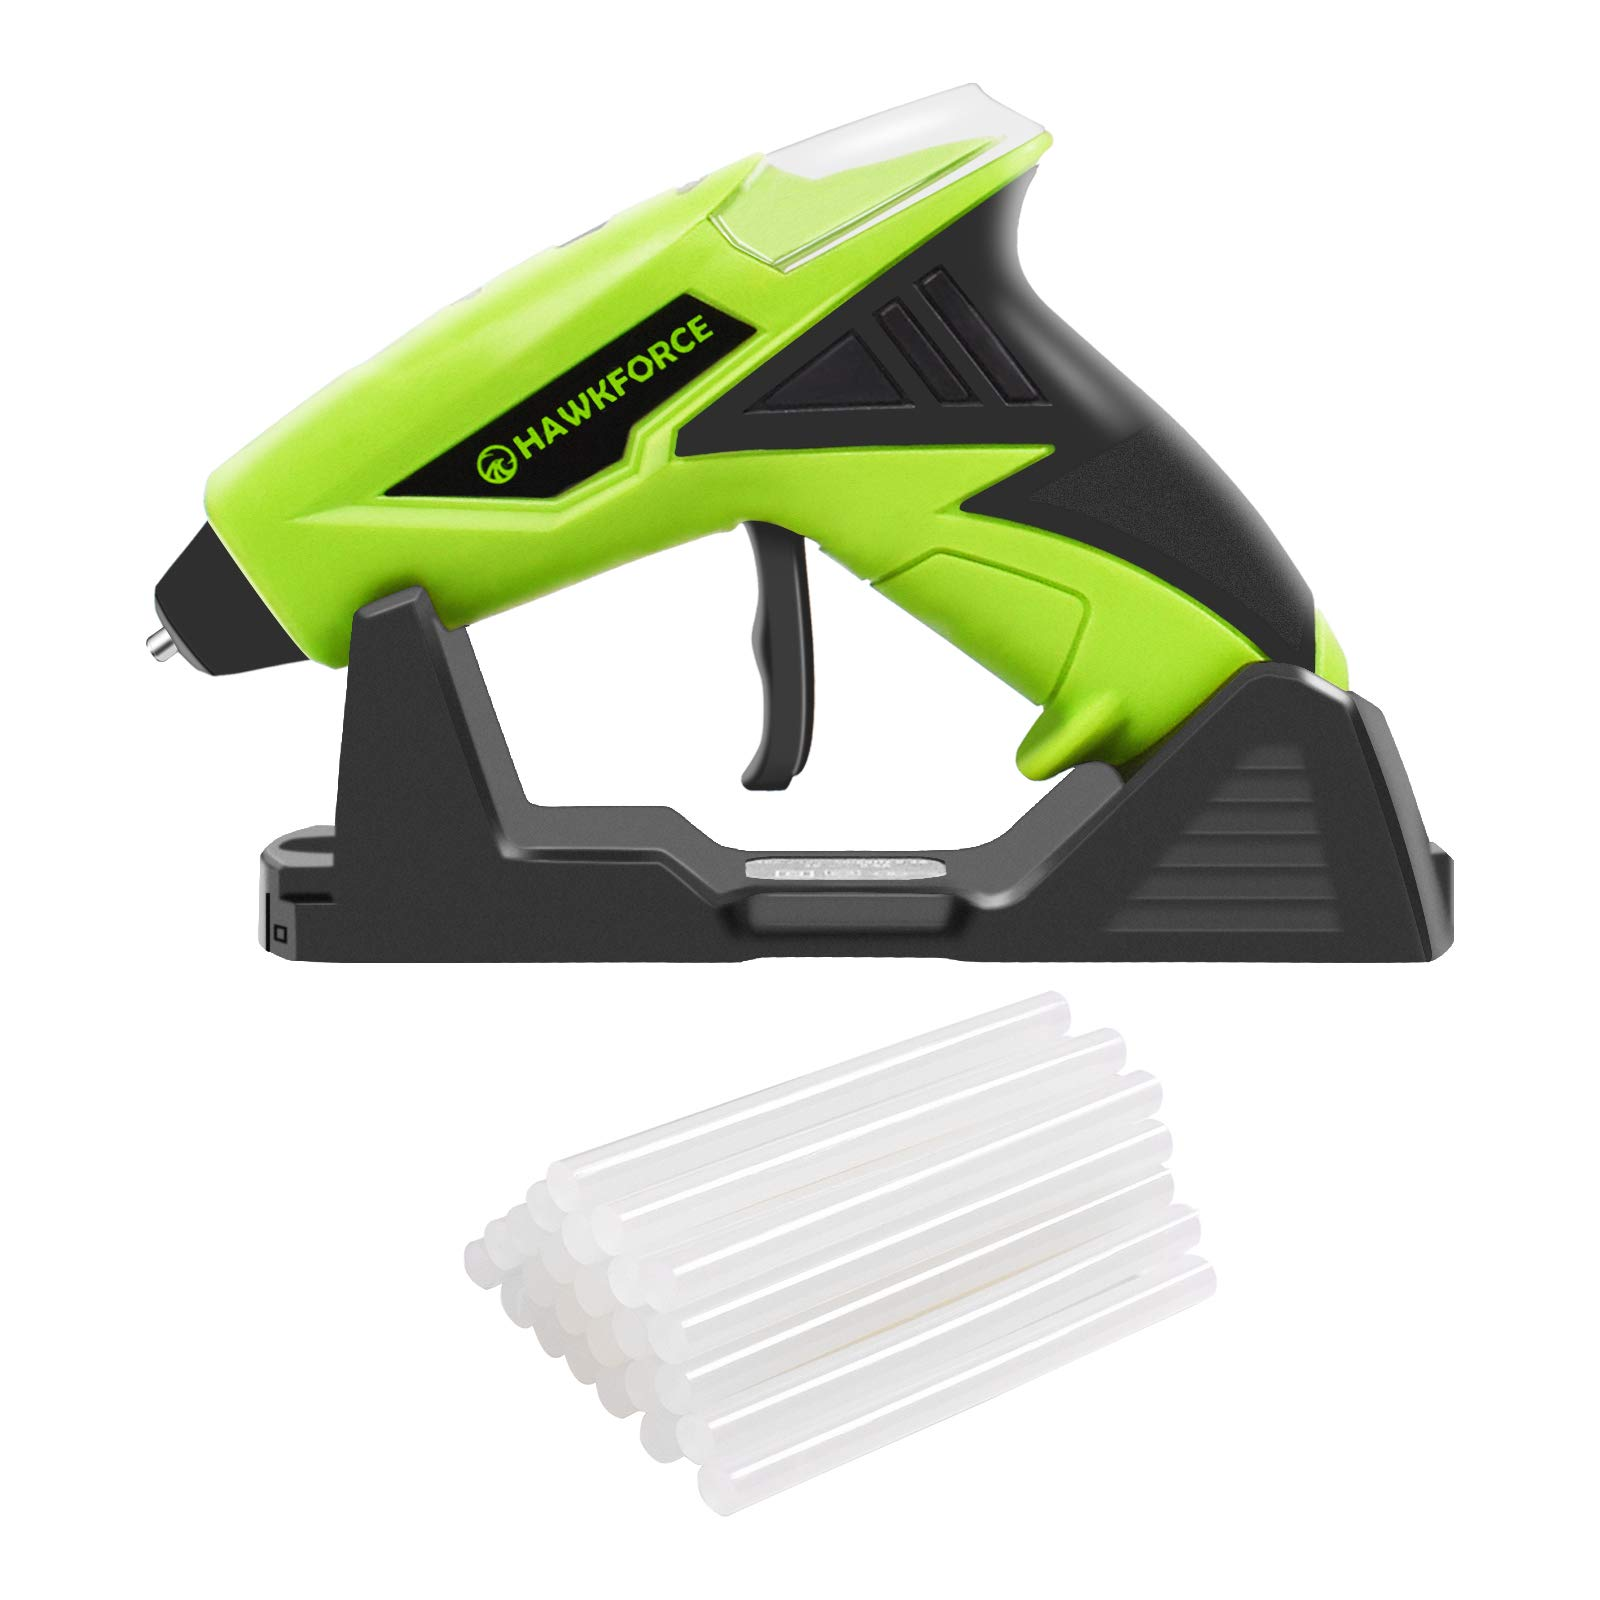 HAWKFORCE Cordless Glue Gun with 25pcs Glue Sticks and Stander High Temperature Energy Efficient Flexible Trigger USB Charging Glue Gun Kit for Home Quick Repair, DIY Small Arts & Crafts Projects